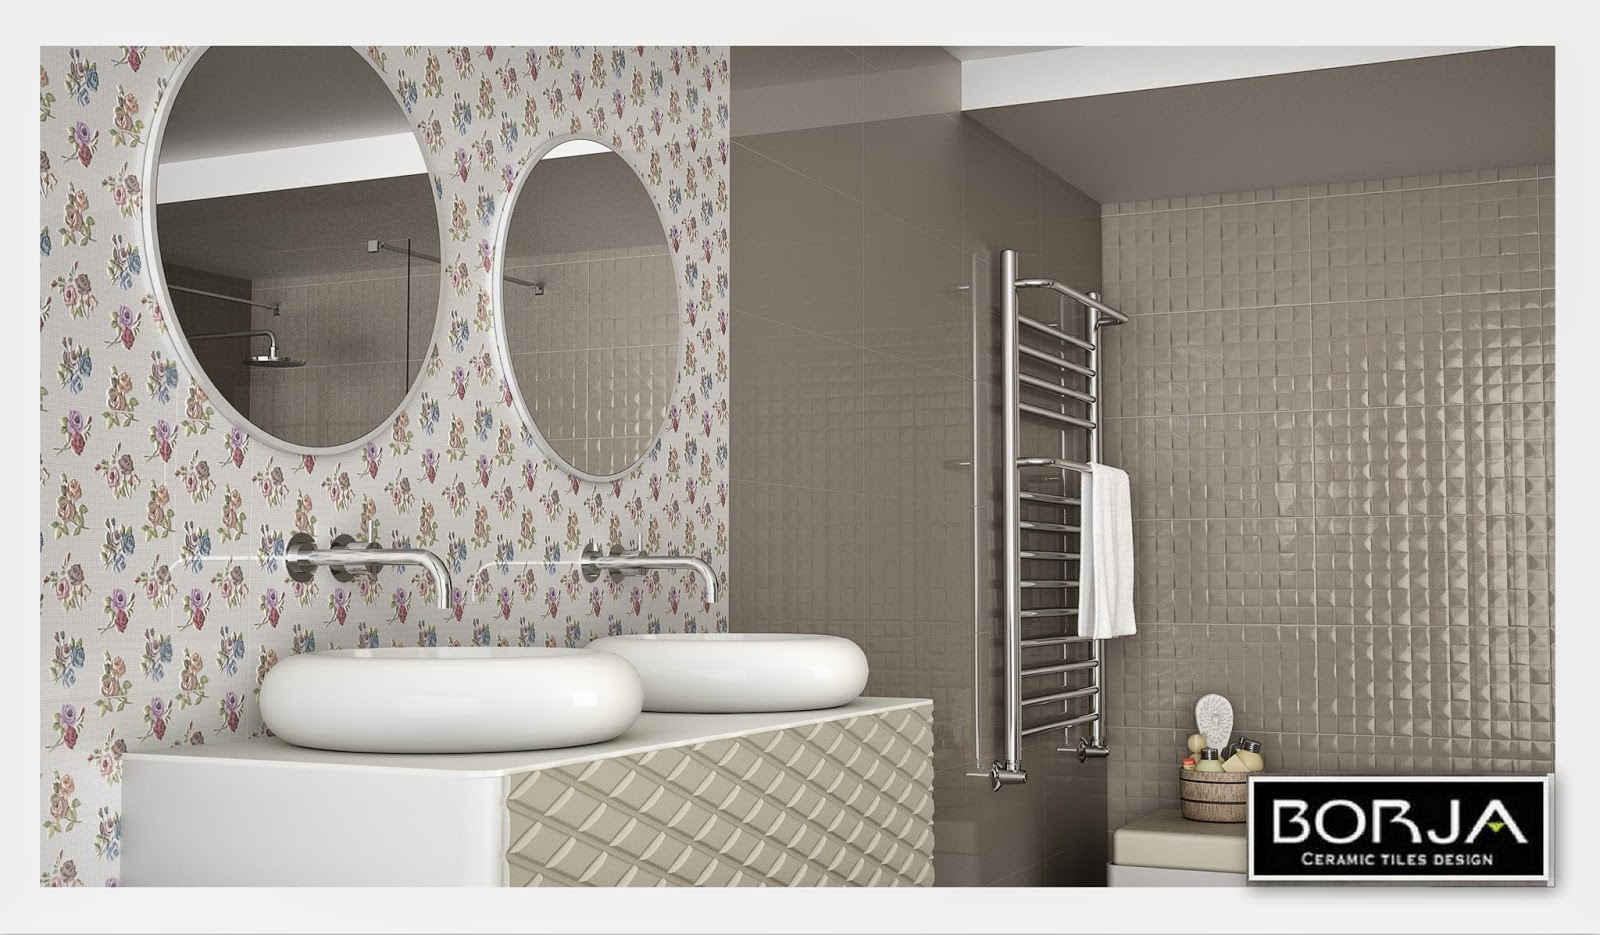 Borja ceramic tiles design dailygadgetfo Image collections